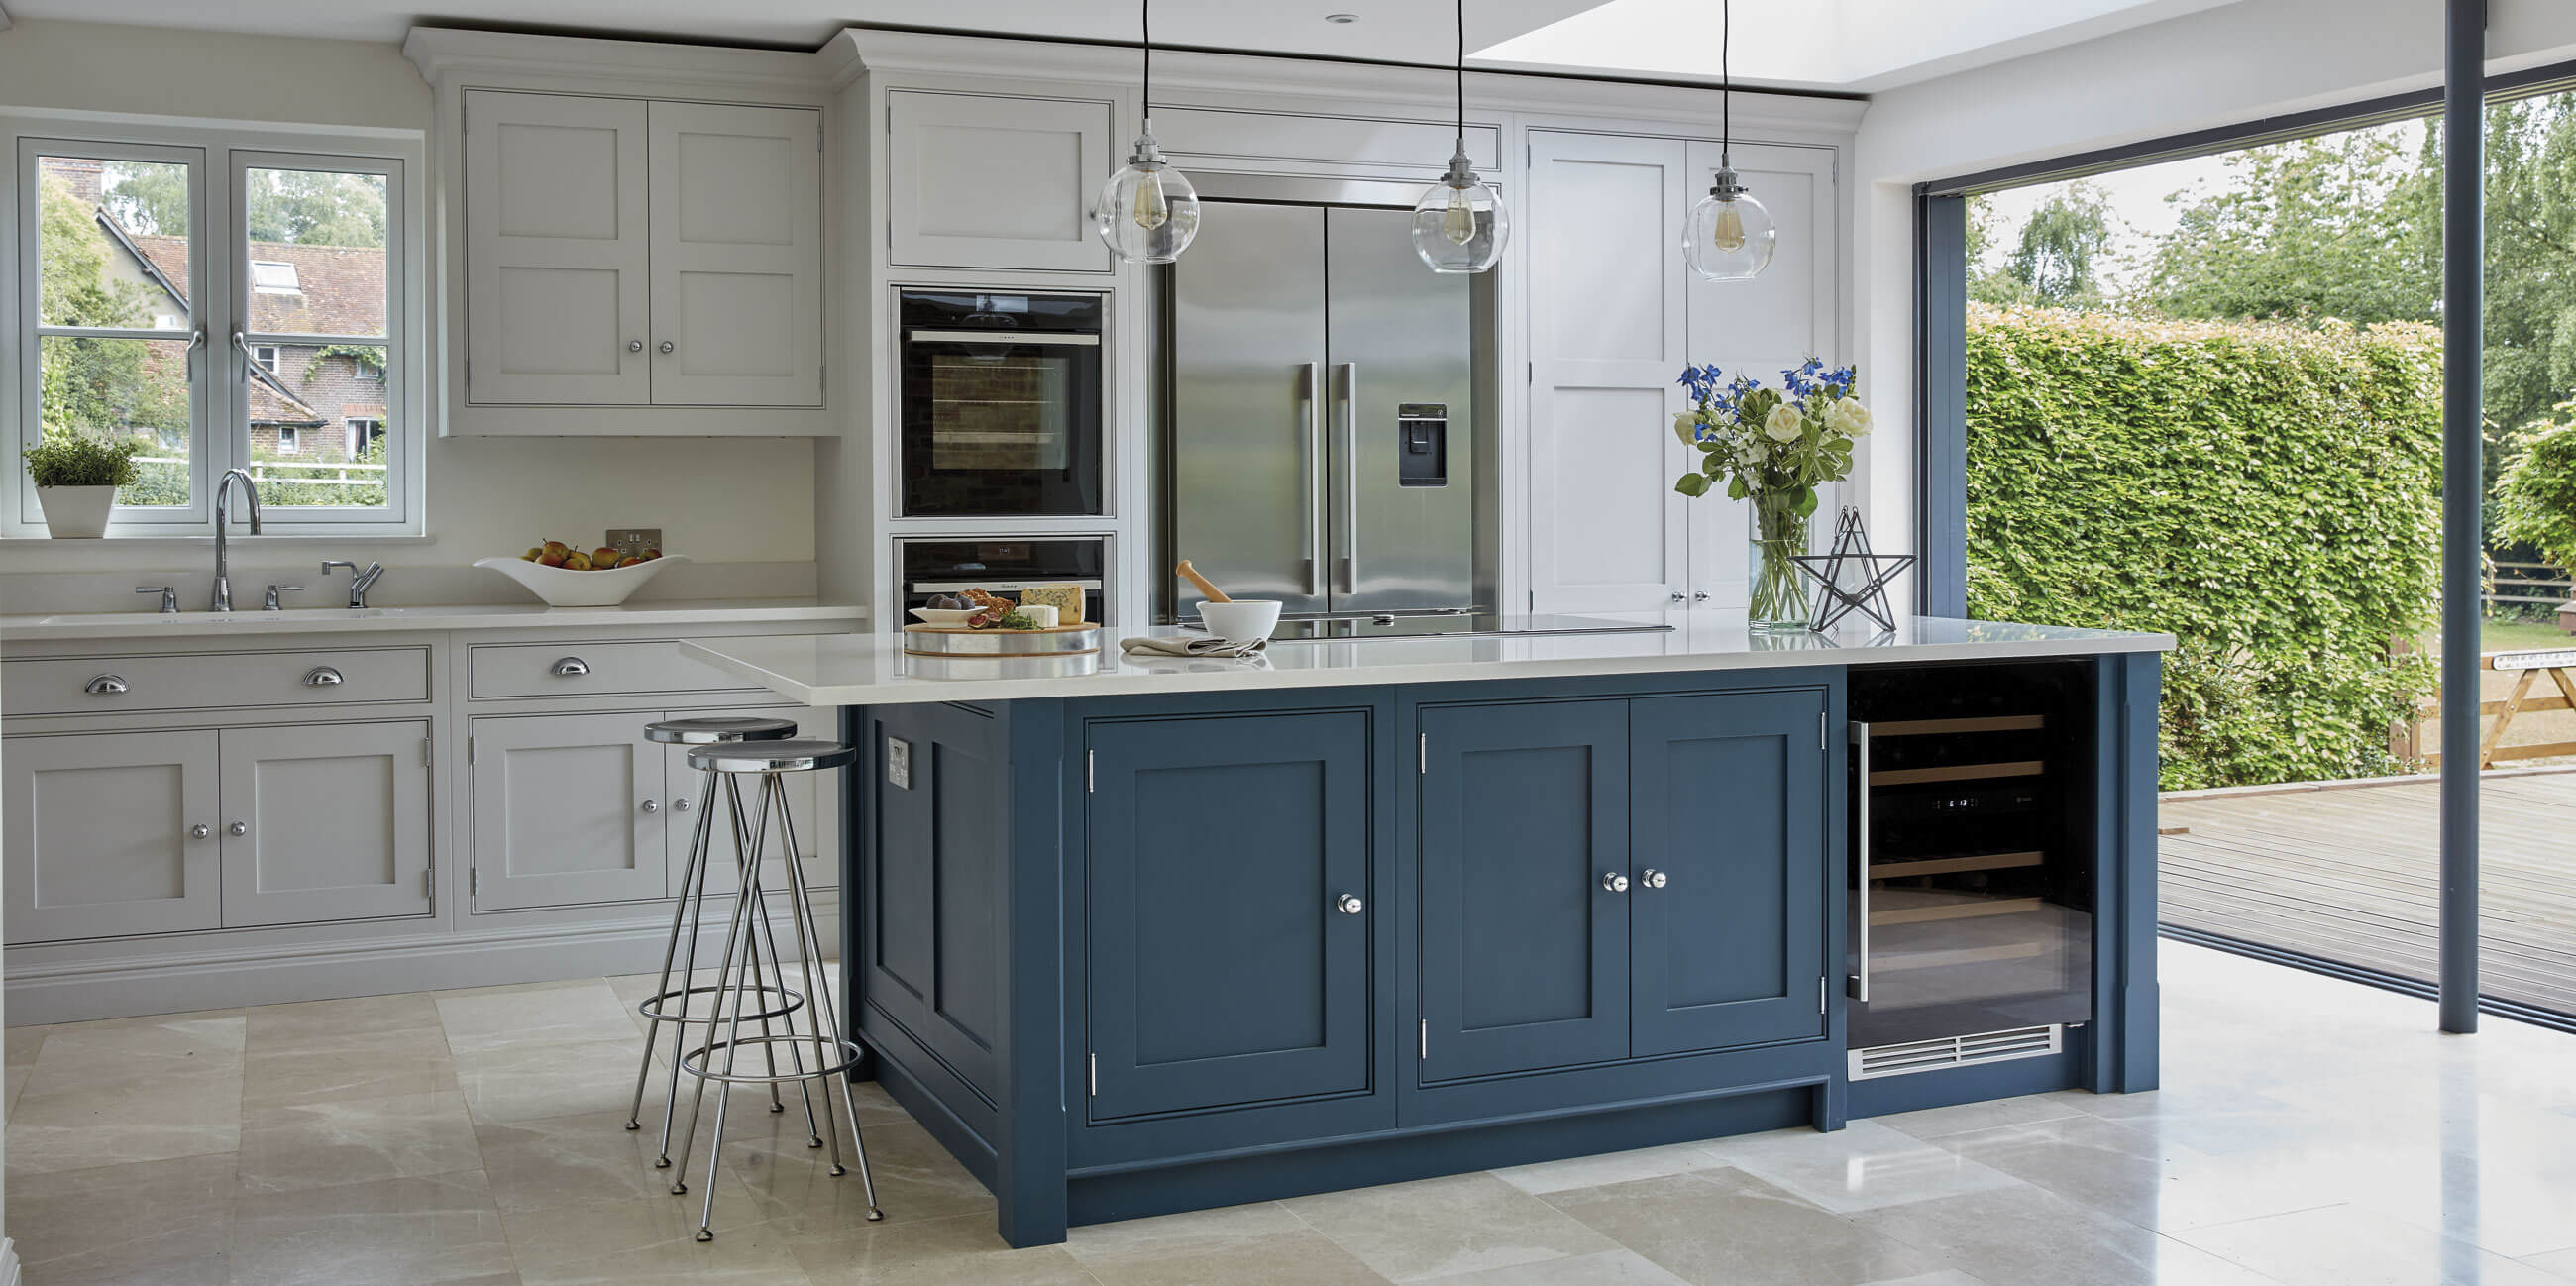 Kitchen Islands | Tom Howley